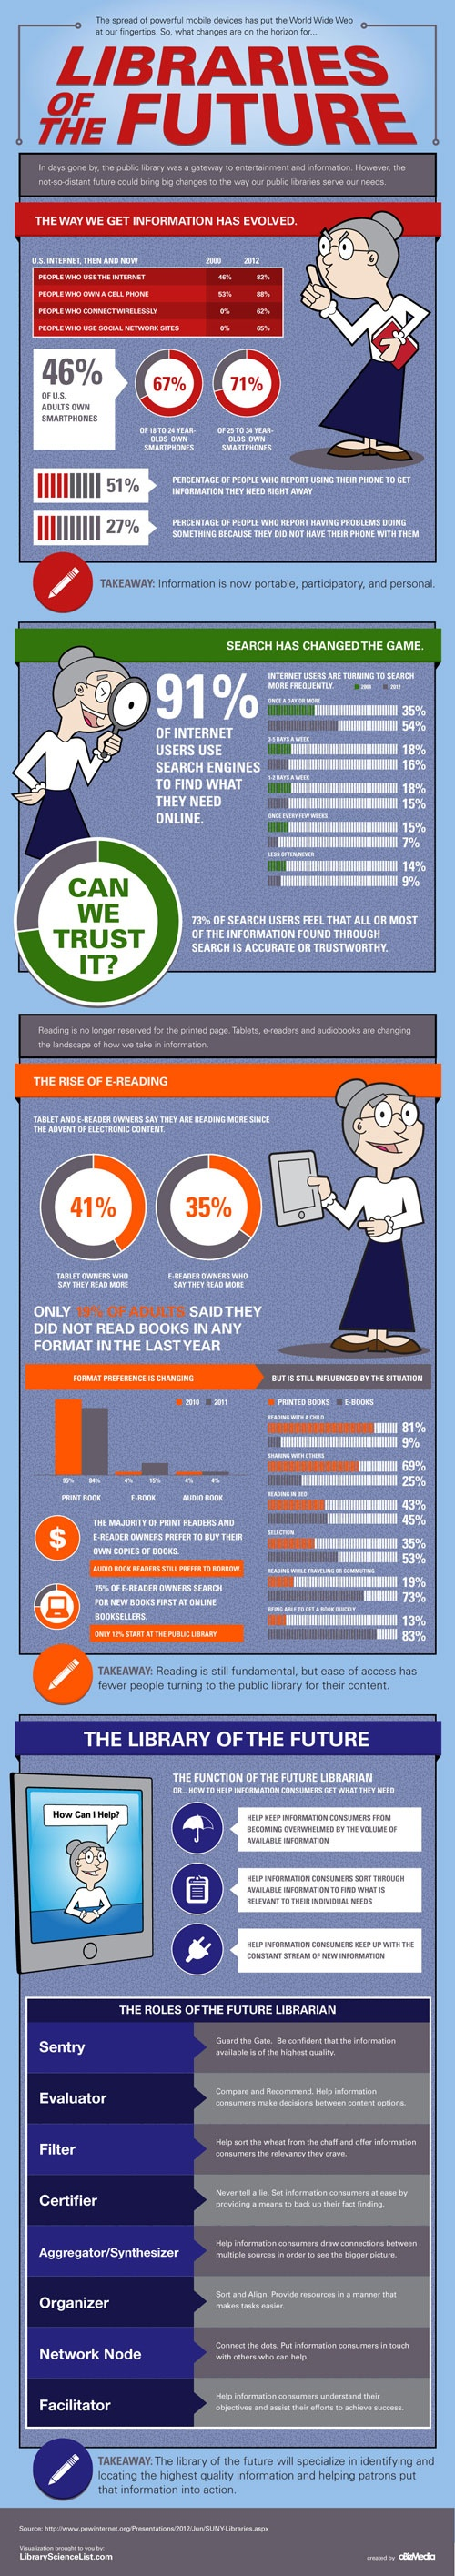 Librarians of the future infographic.